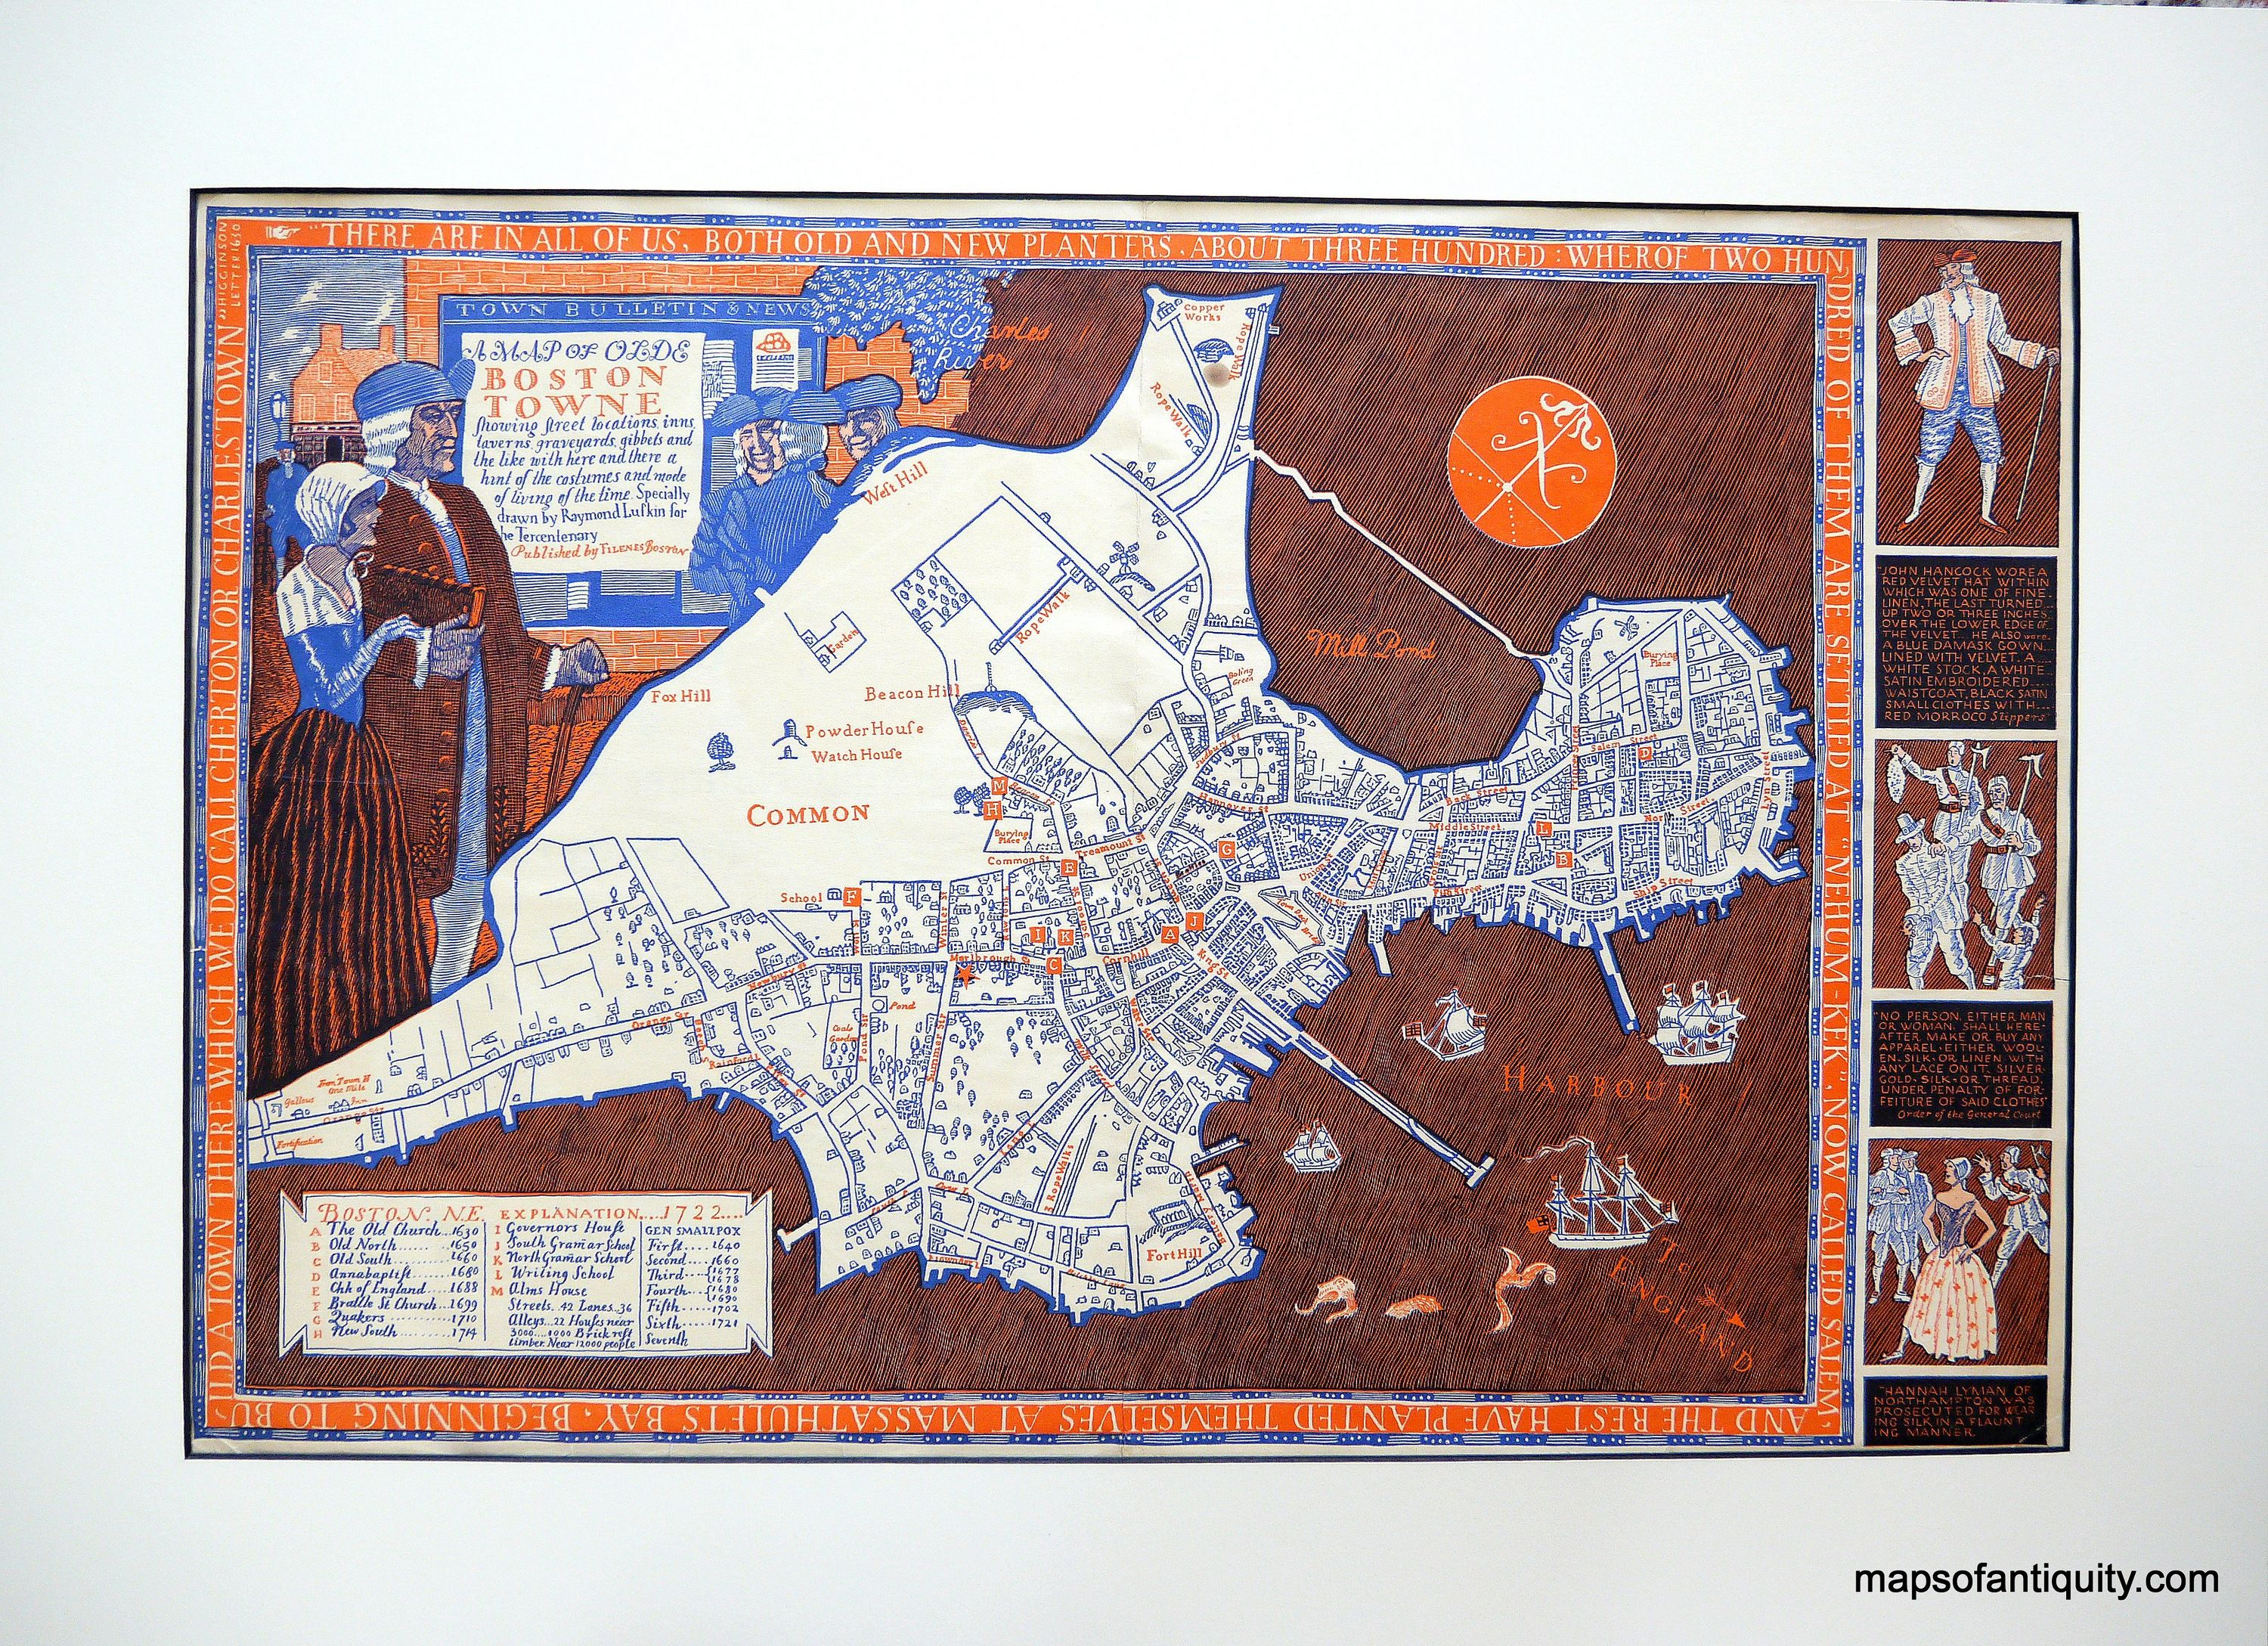 A Sea Serpent Has Been Spotted In Boston Harbor On This Antique - Antique boston map